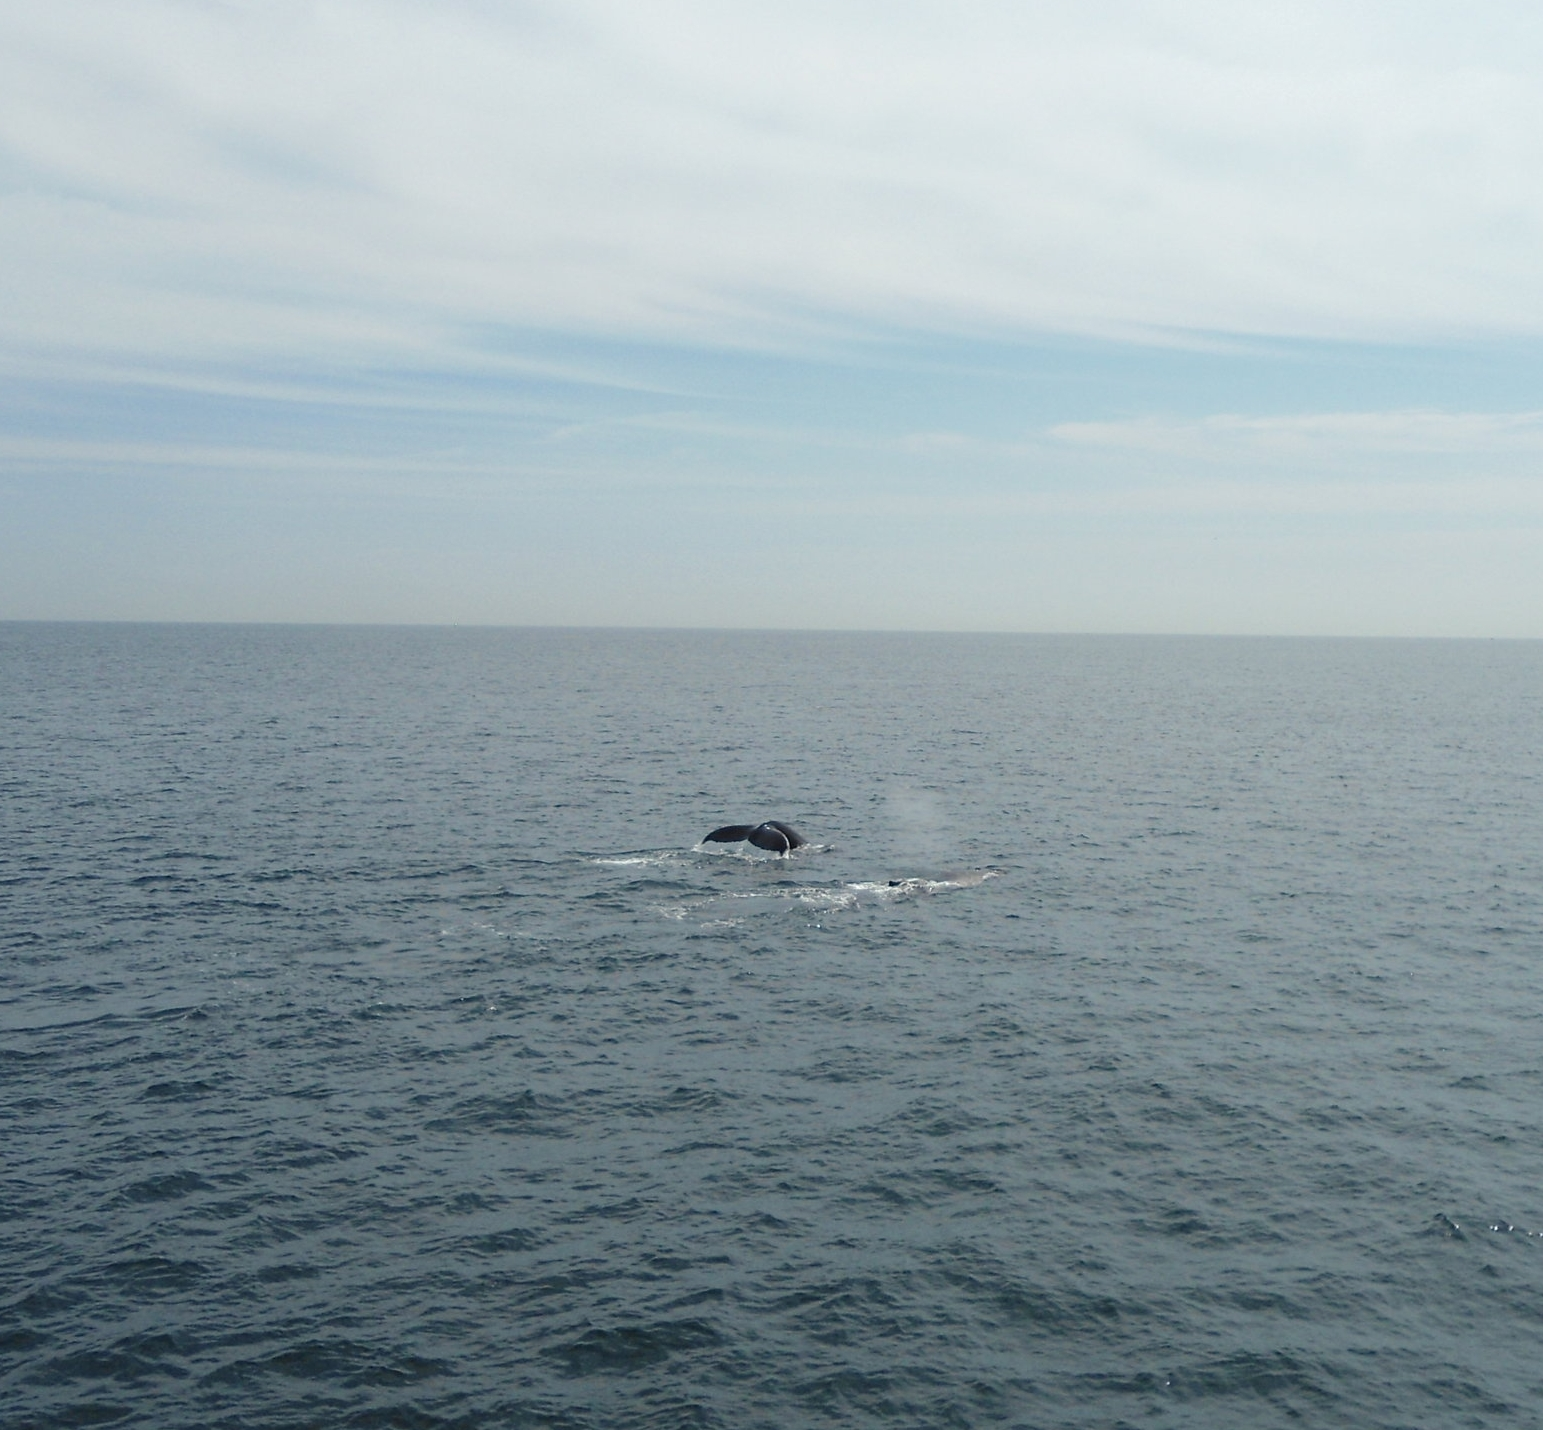 The tail of a humpback whale and accompanying spray off of Boston Harbor in New England.